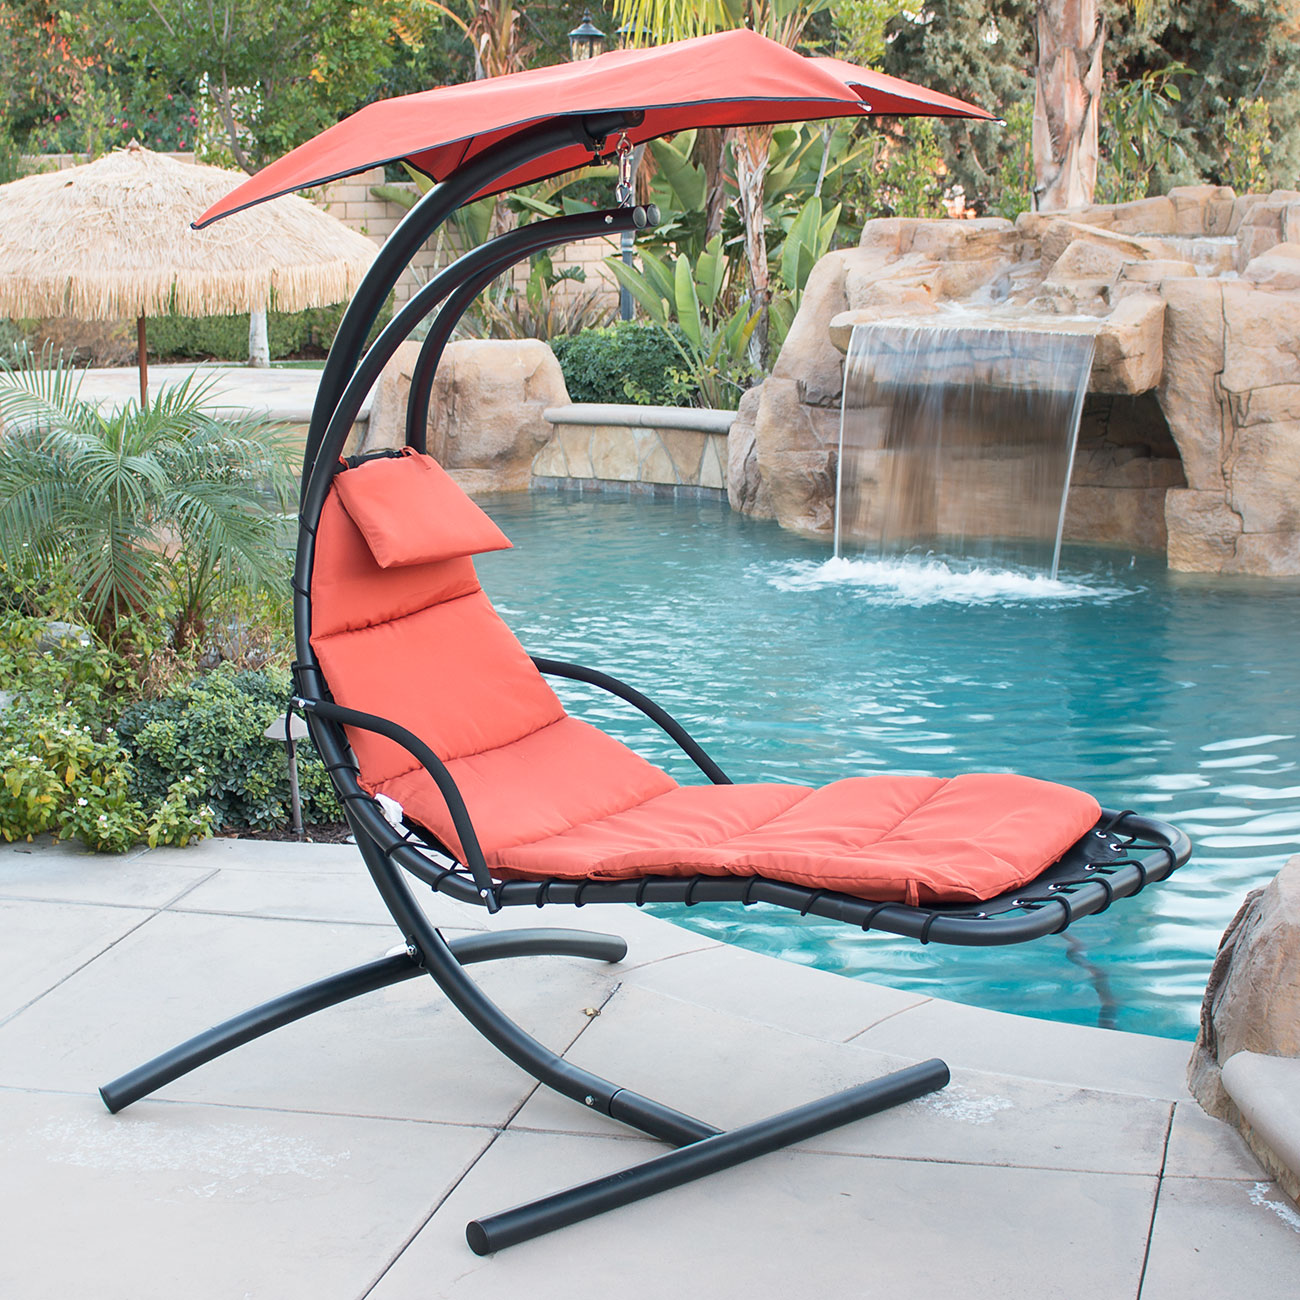 Hanging Chaise Lounger Chair Arc Stand Air Porch Swing